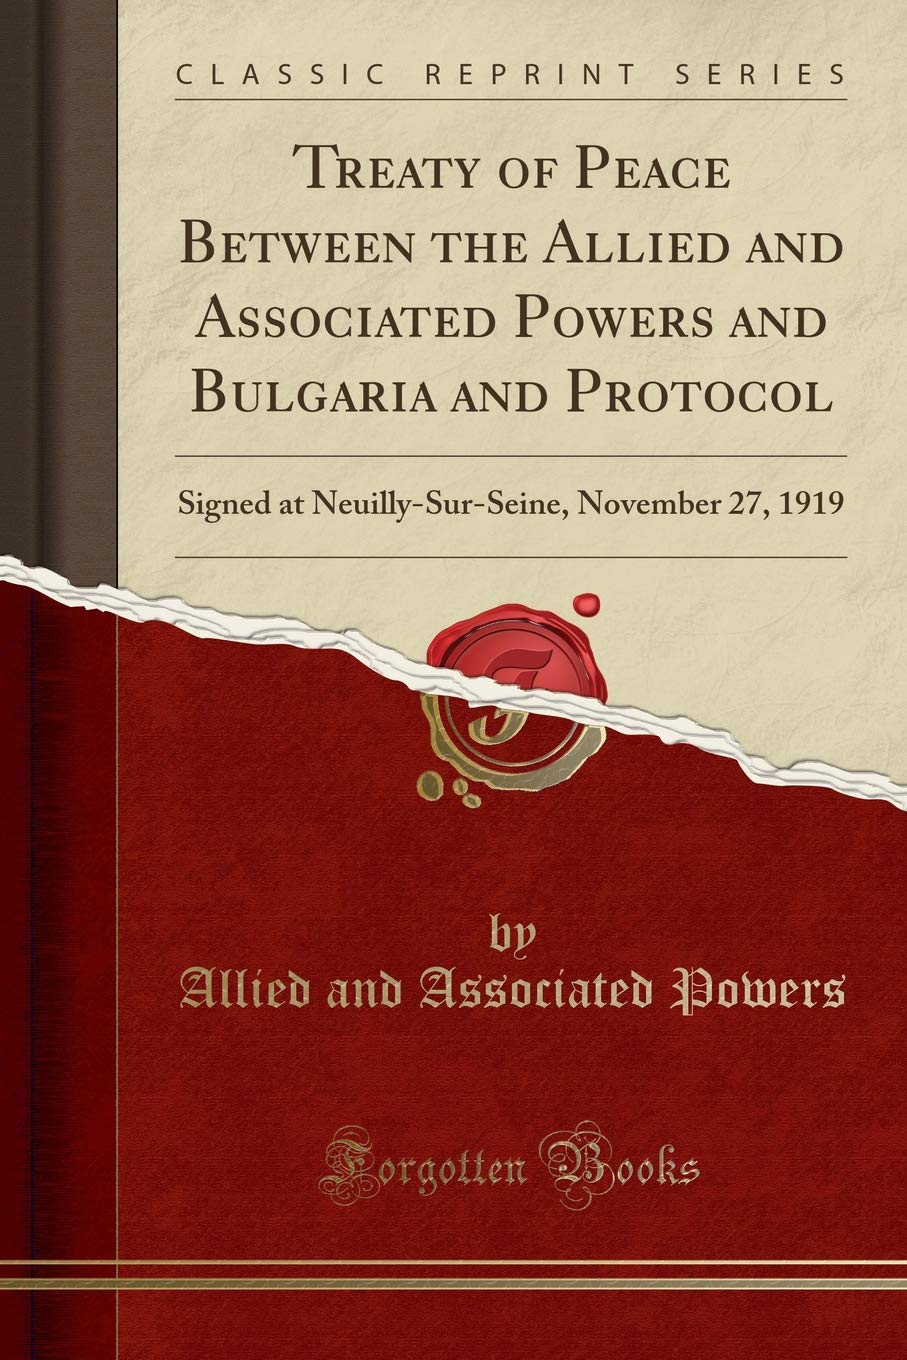 Download Treaty of Peace Between the Allied and Associated Powers and Bulgaria and Protocol: Signed at Neuilly-Sur-Seine, November 27, 1919 (Classic Reprint) PDF